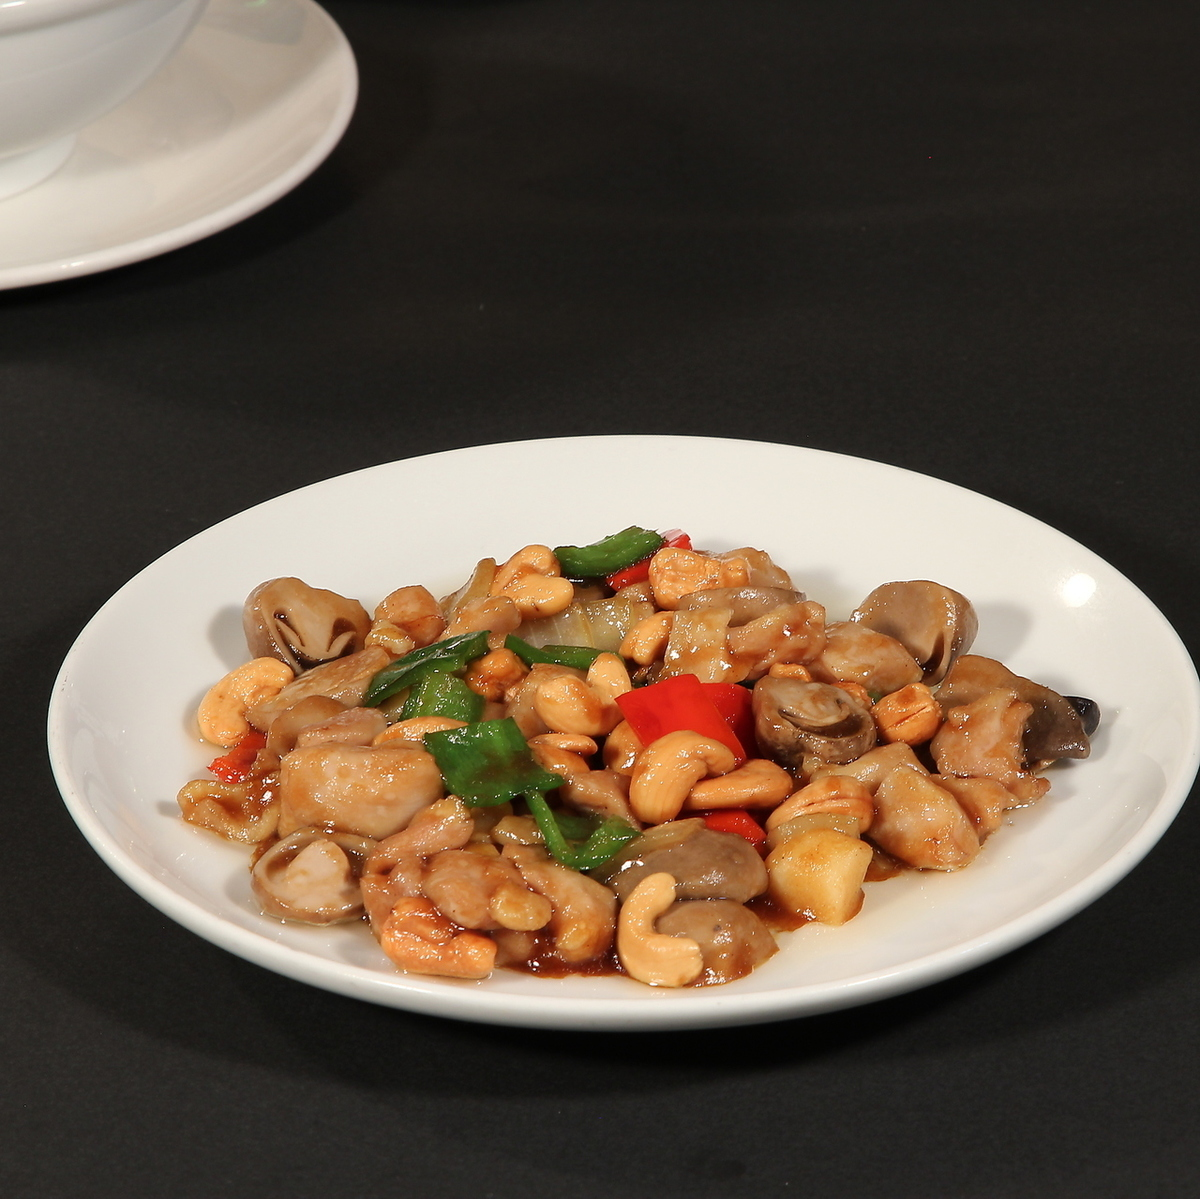 Stir-fry chicken and cashew nut / stir-fried beef with oyster sauce